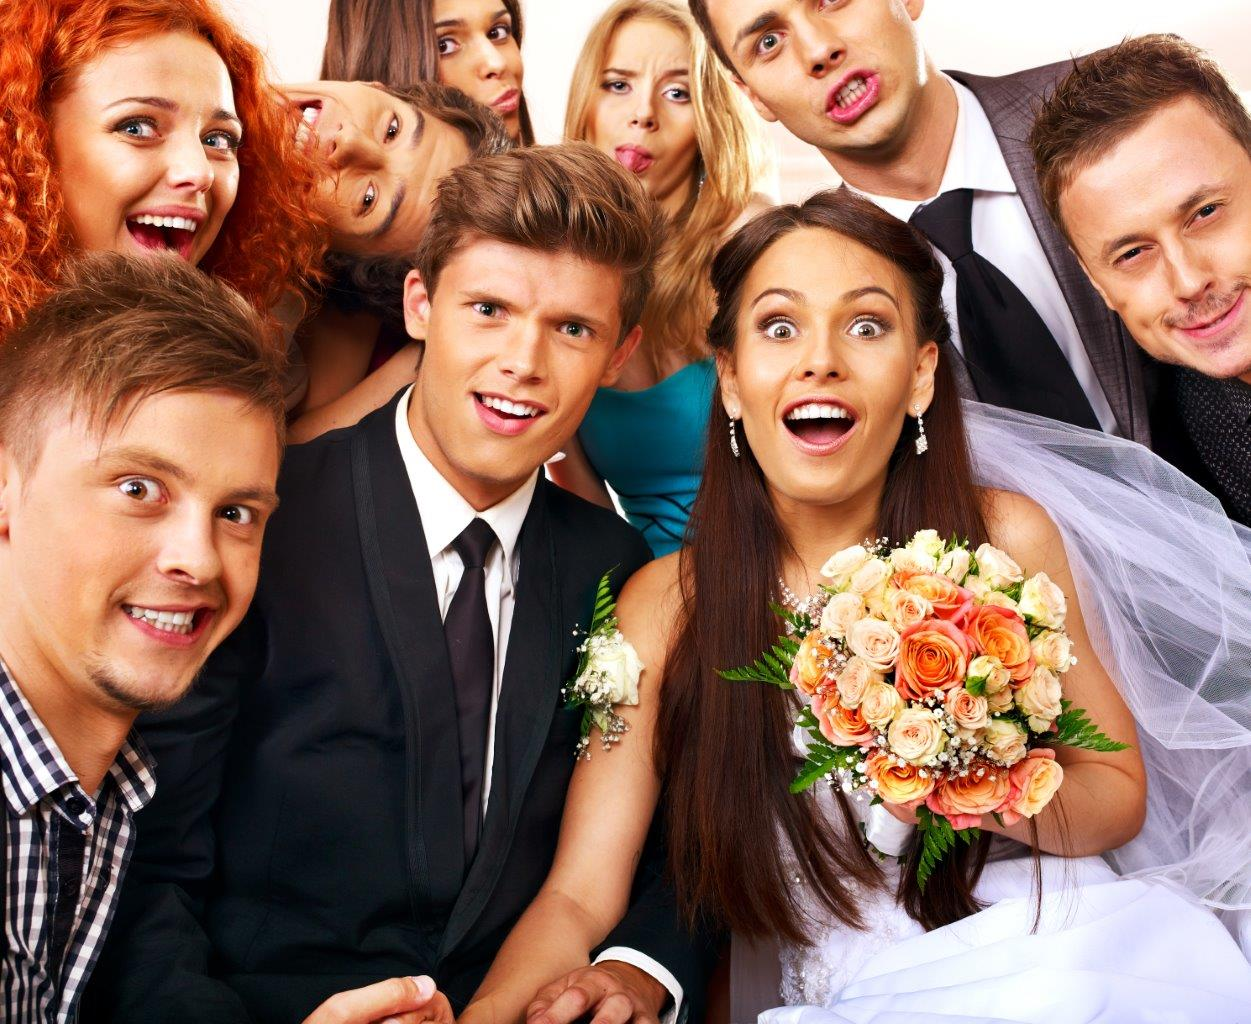 Fun wedding group photo